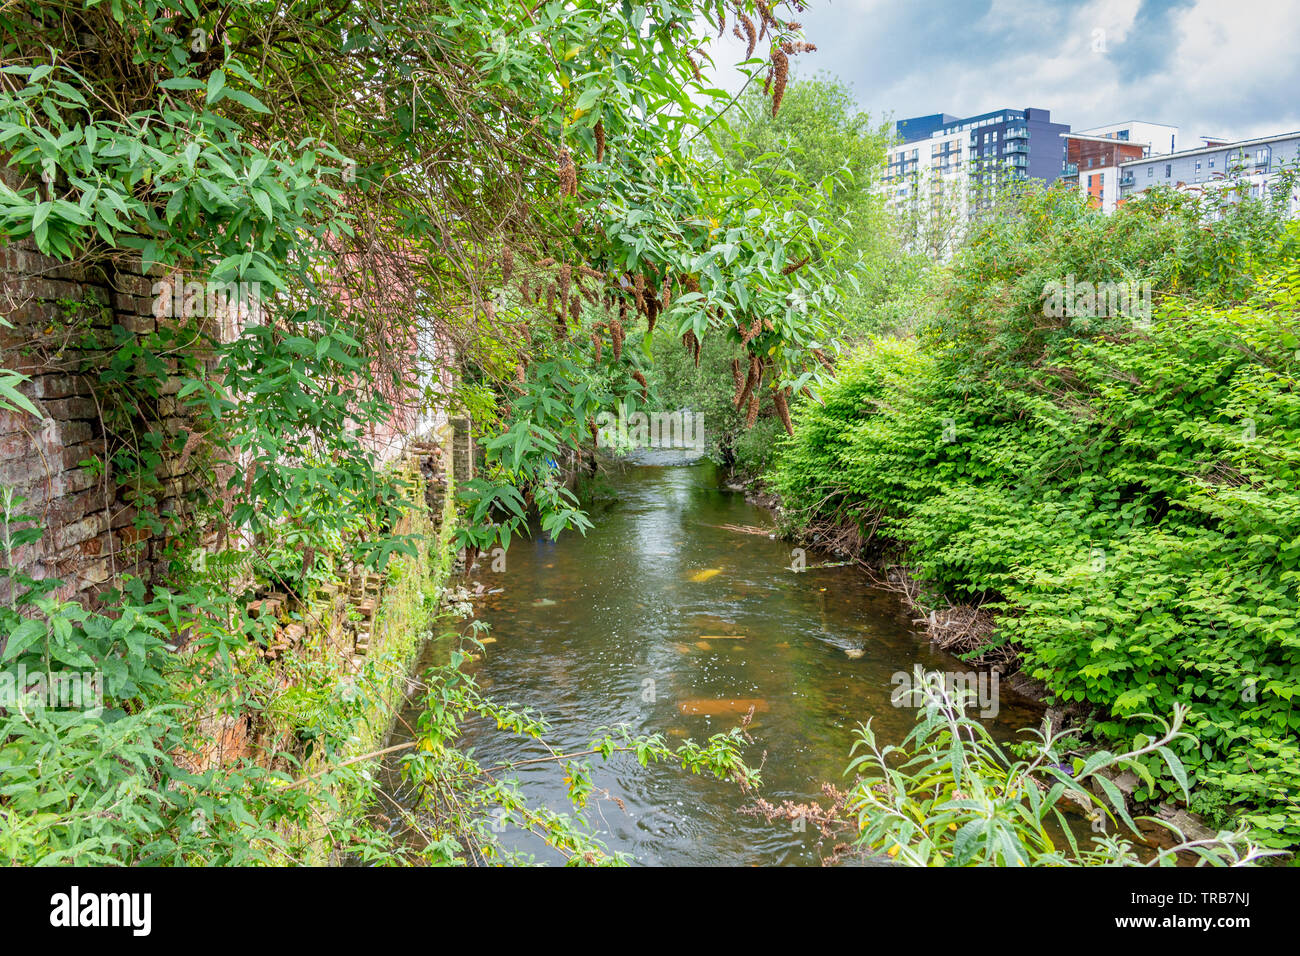 Manchester, UK: the River Irk from the Roger Street bridge. The Irk rises in Royton and runs through Chadderton, Middleton and Blackley to join the Ri - Stock Image